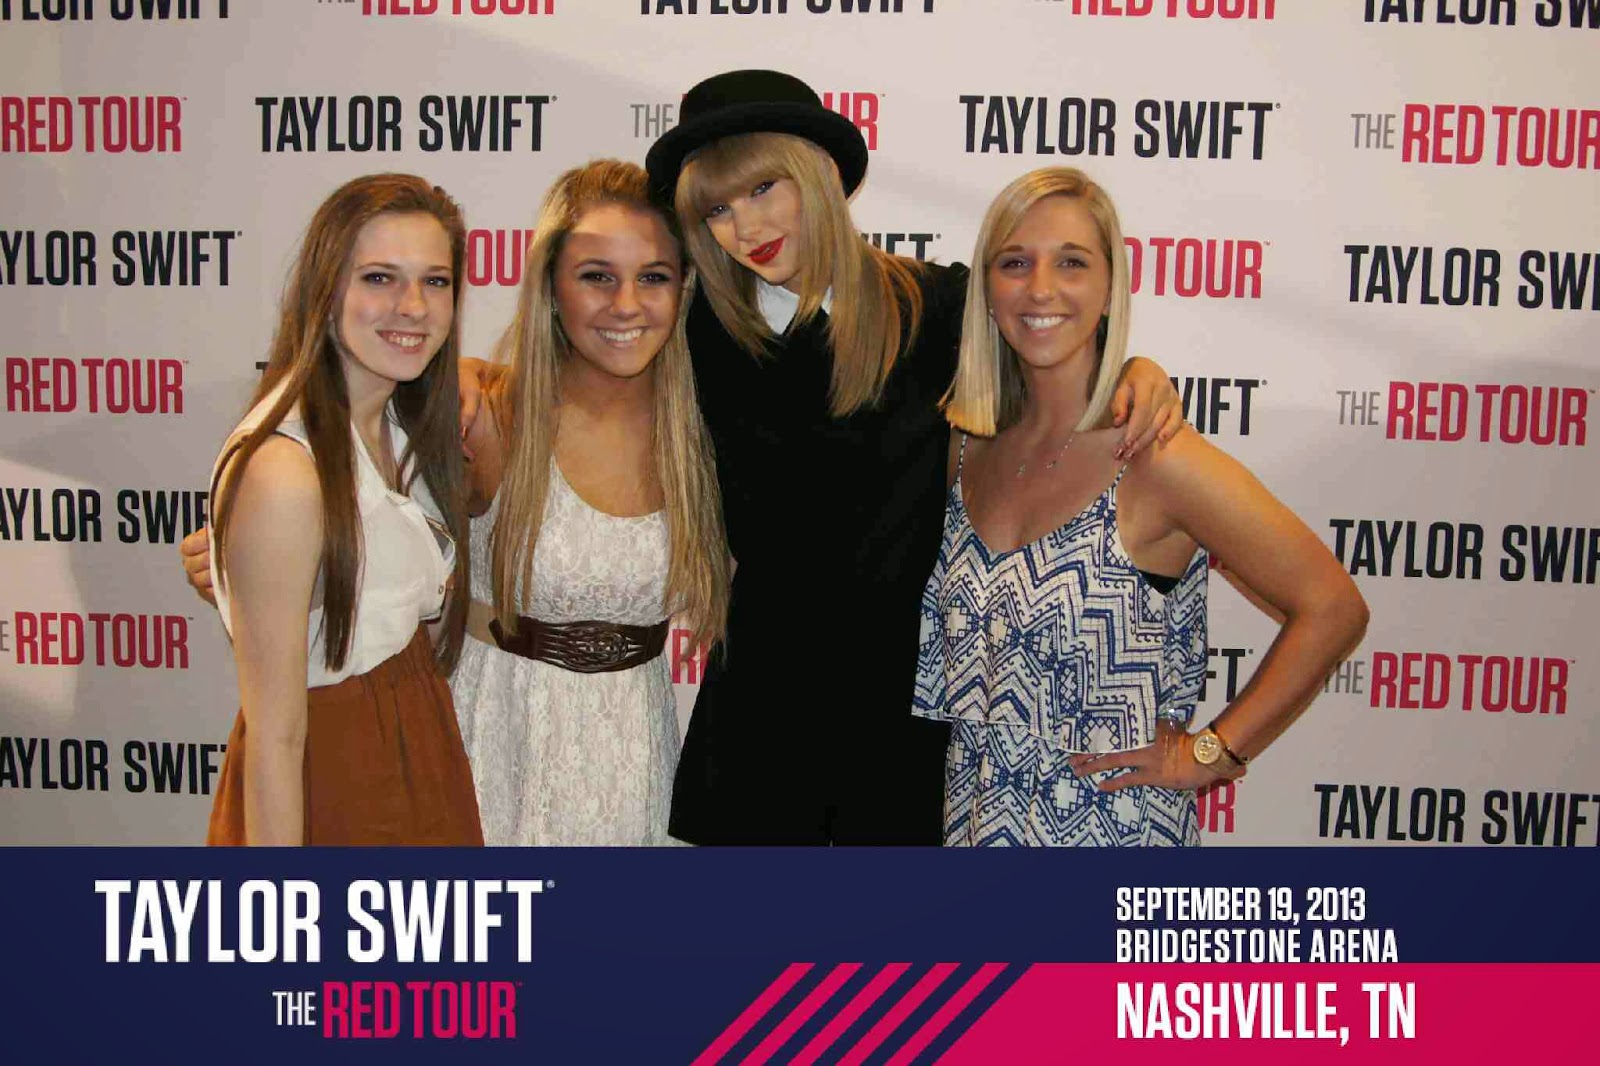 Taylor swift meet and greet picturesrst class m4hsunfo